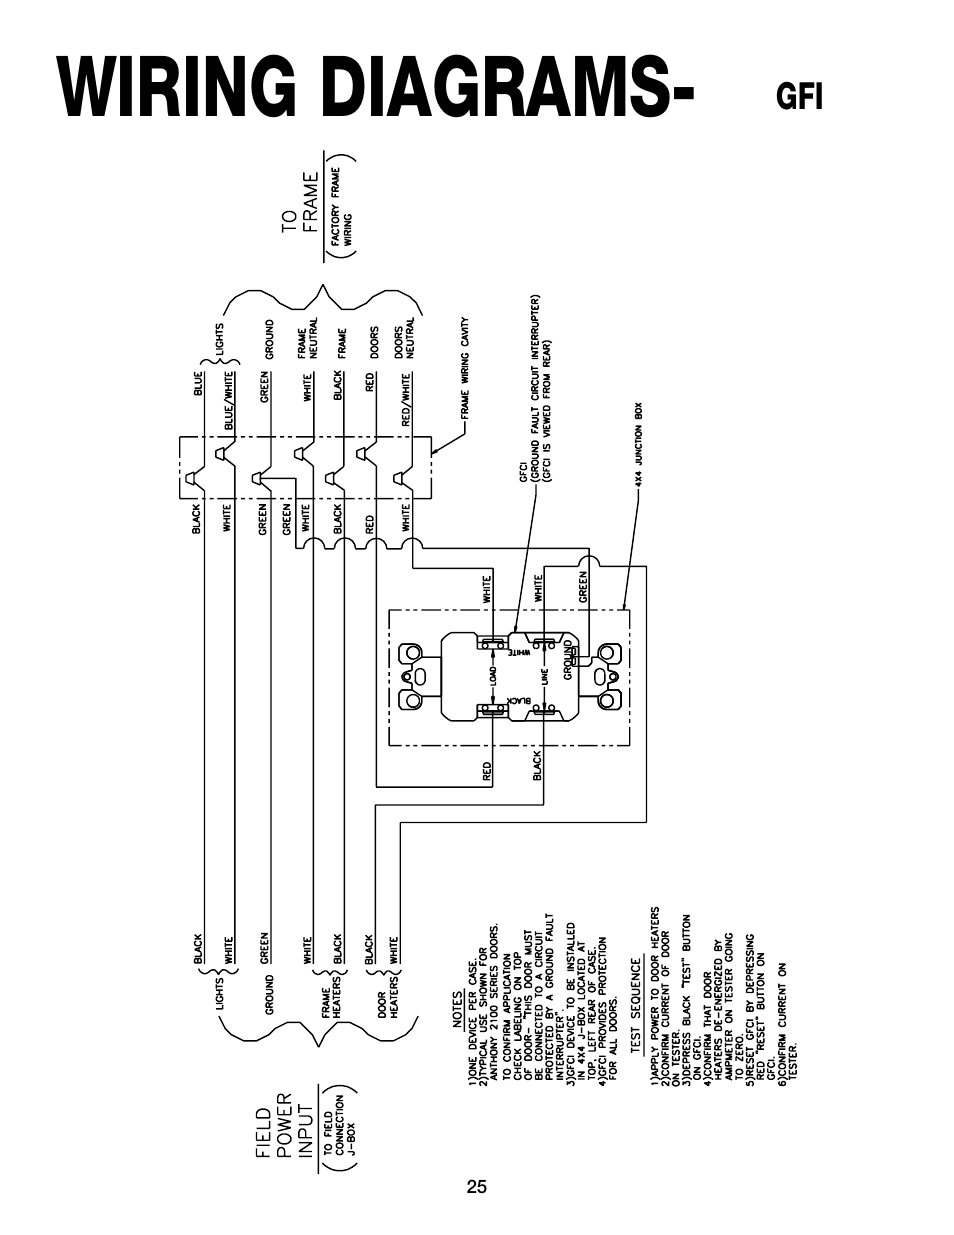 medium resolution of wiring diagrams hill phoenix orb user manual page 29 44 phoenix phase converter wiring diagram phoenix wiring diagram